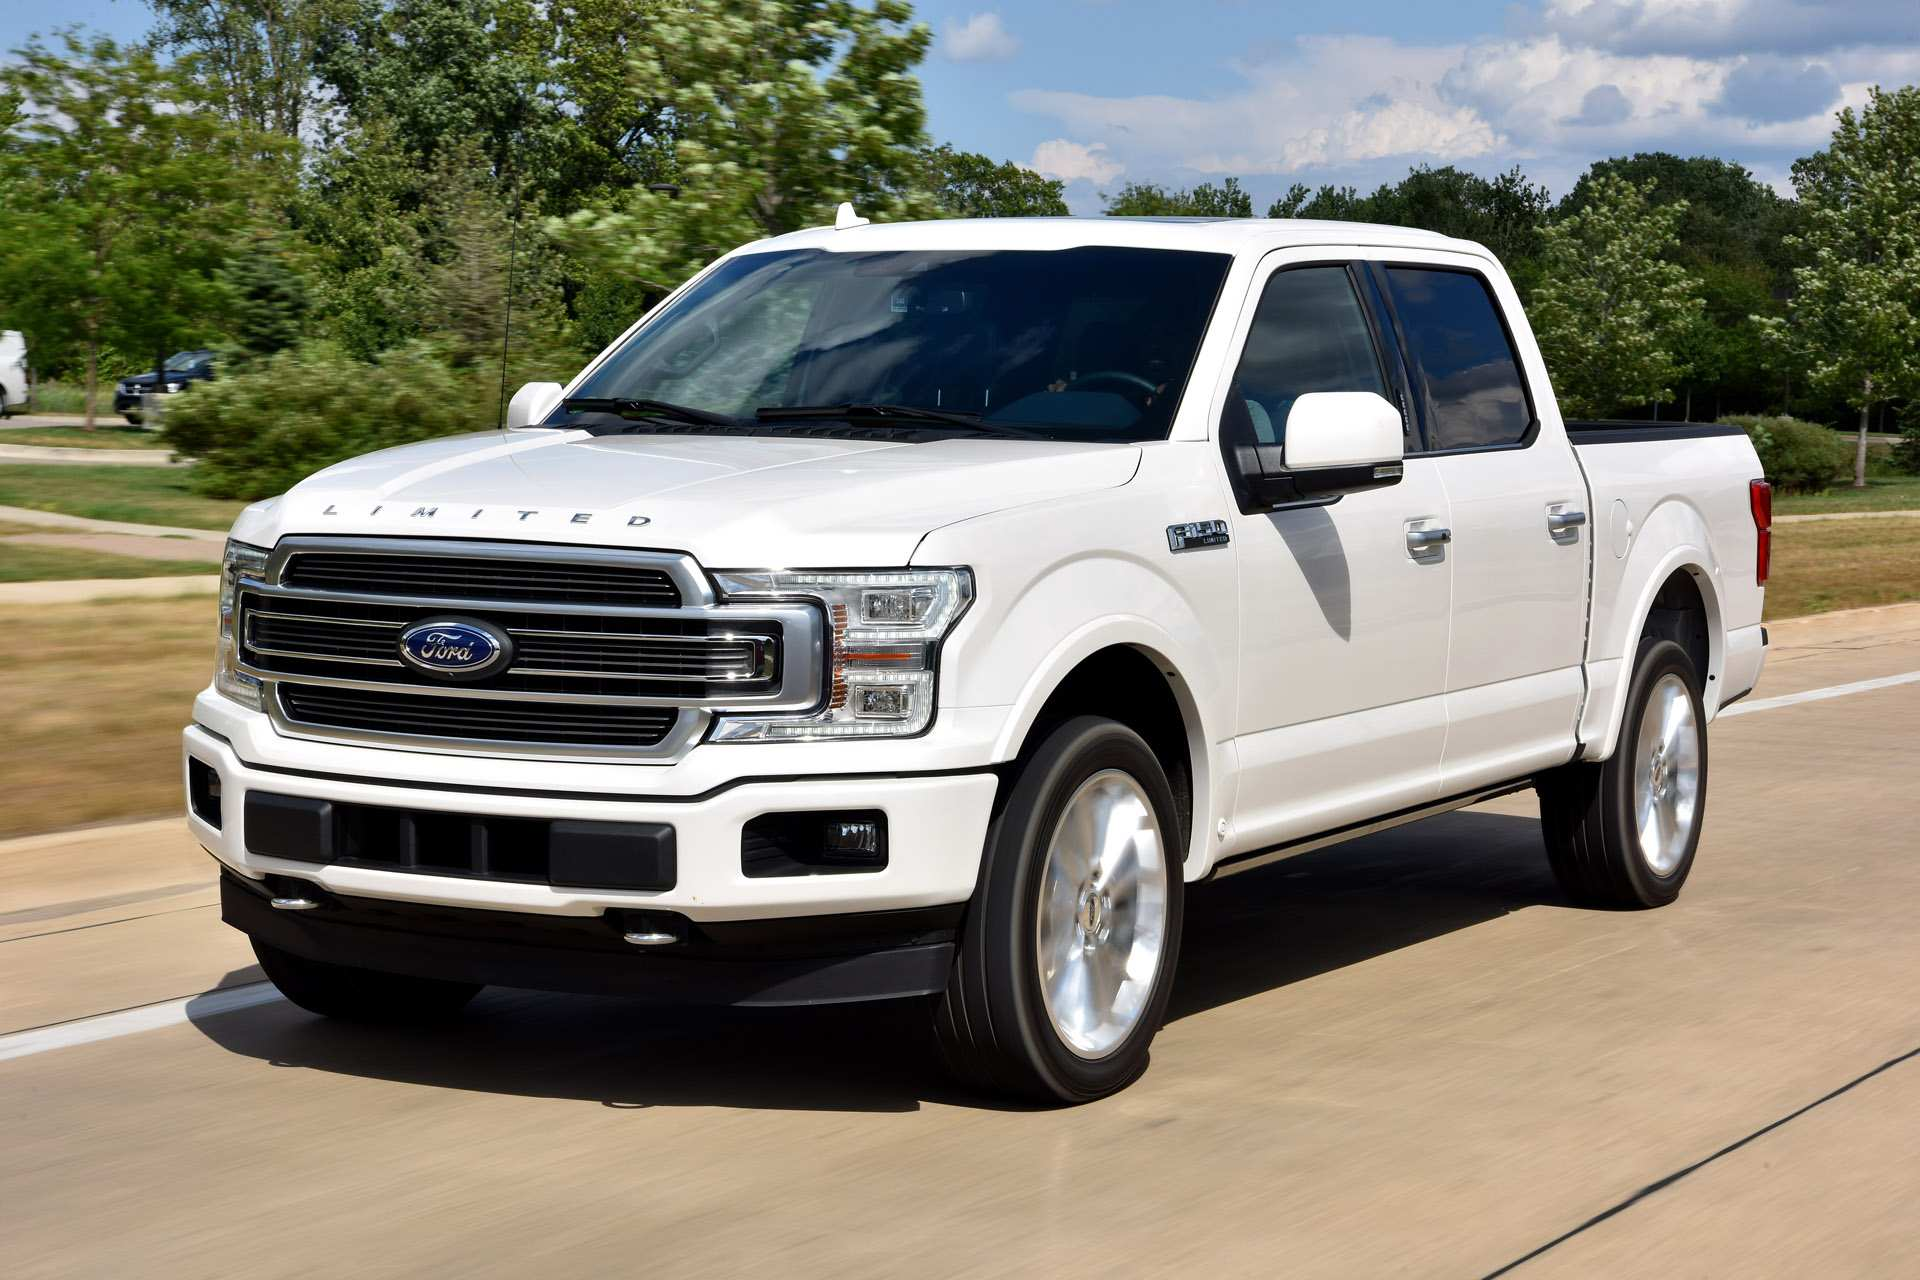 93 All New 2020 Ford F 150 Colors Wallpaper for 2020 Ford F 150 Colors